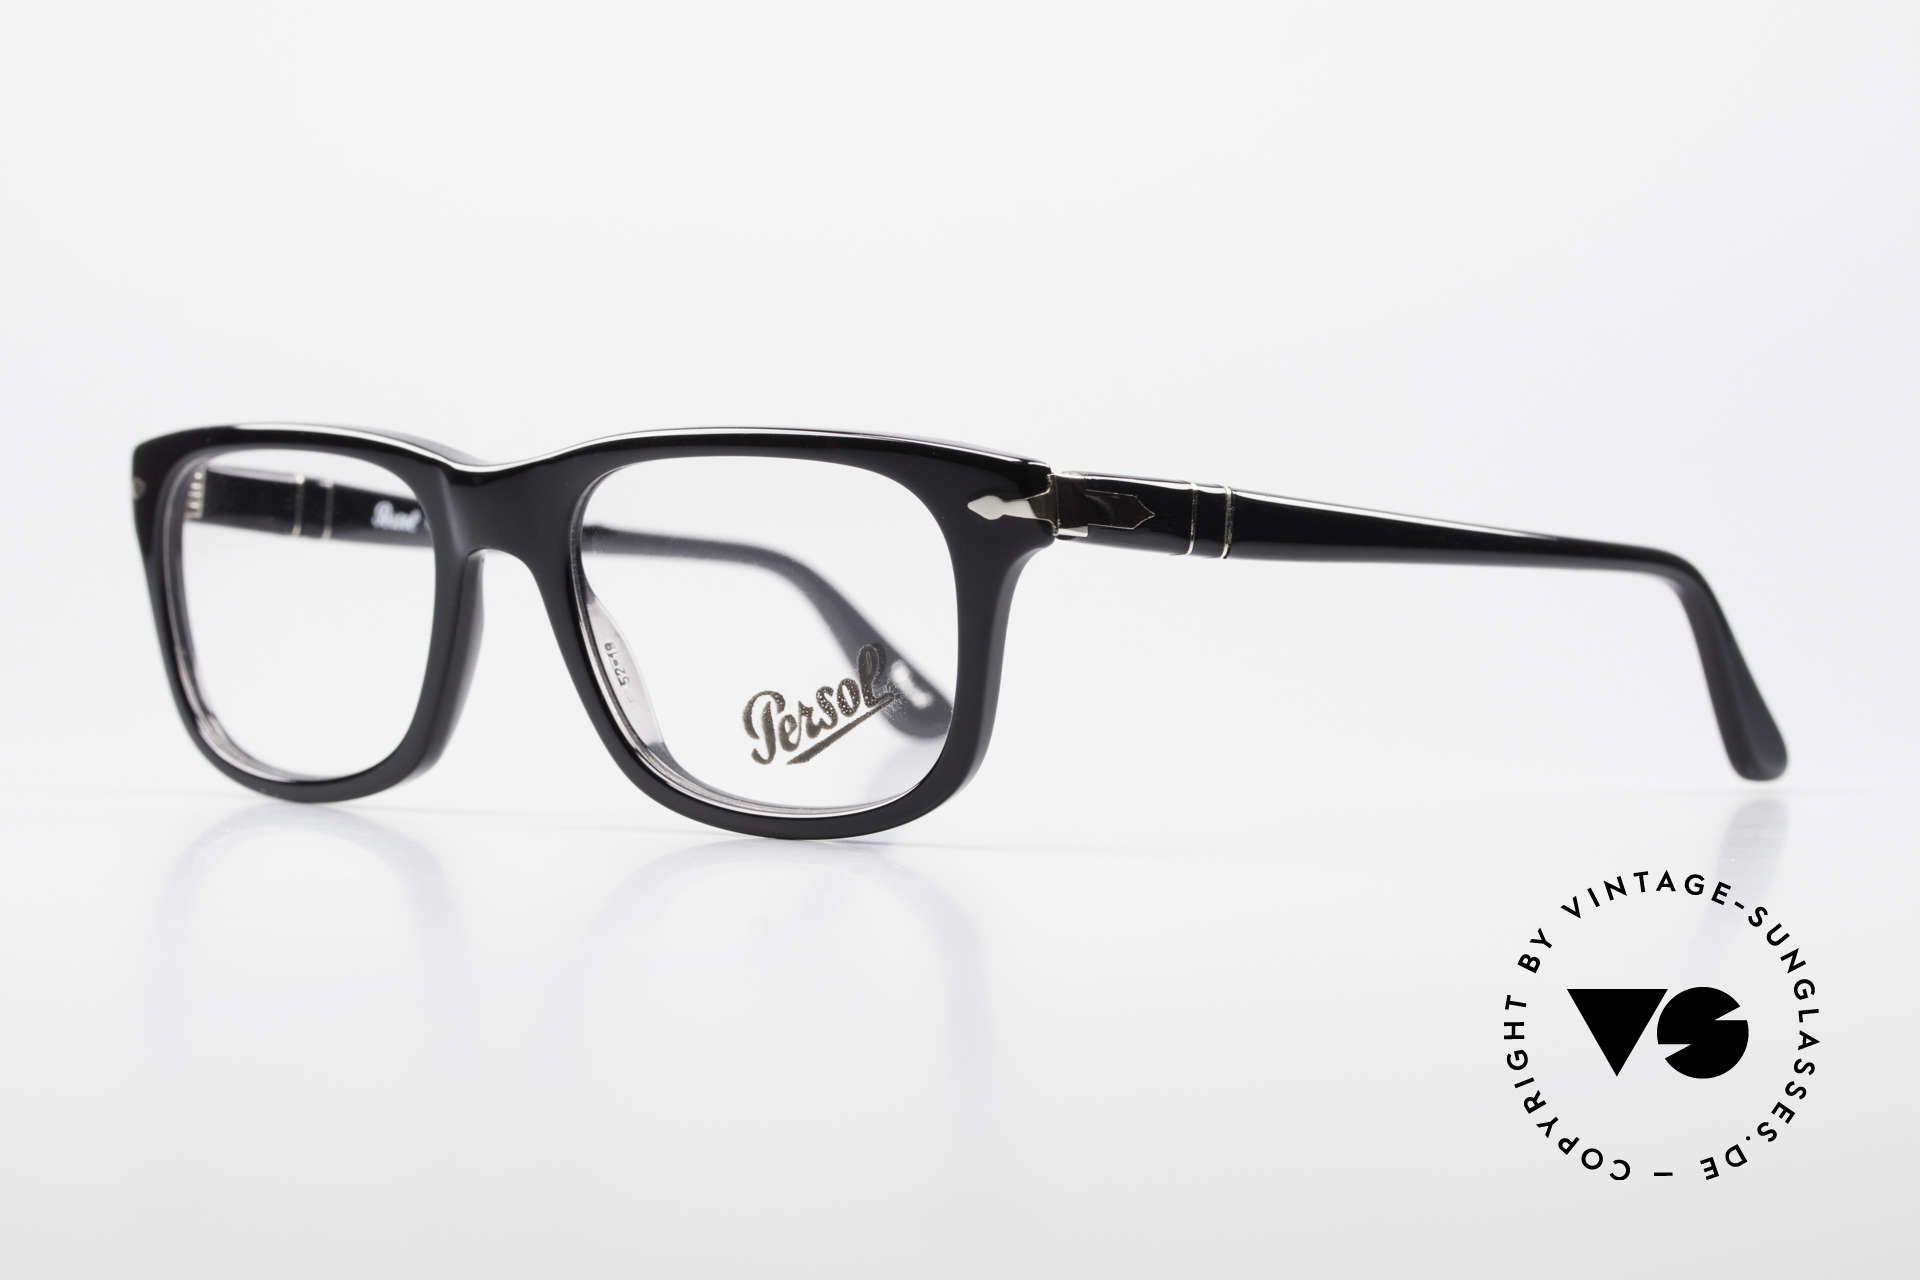 Persol 3029 Striking Persol Glasses Unisex, reissue of the old vintage Persol RATTI models, Made for Men and Women